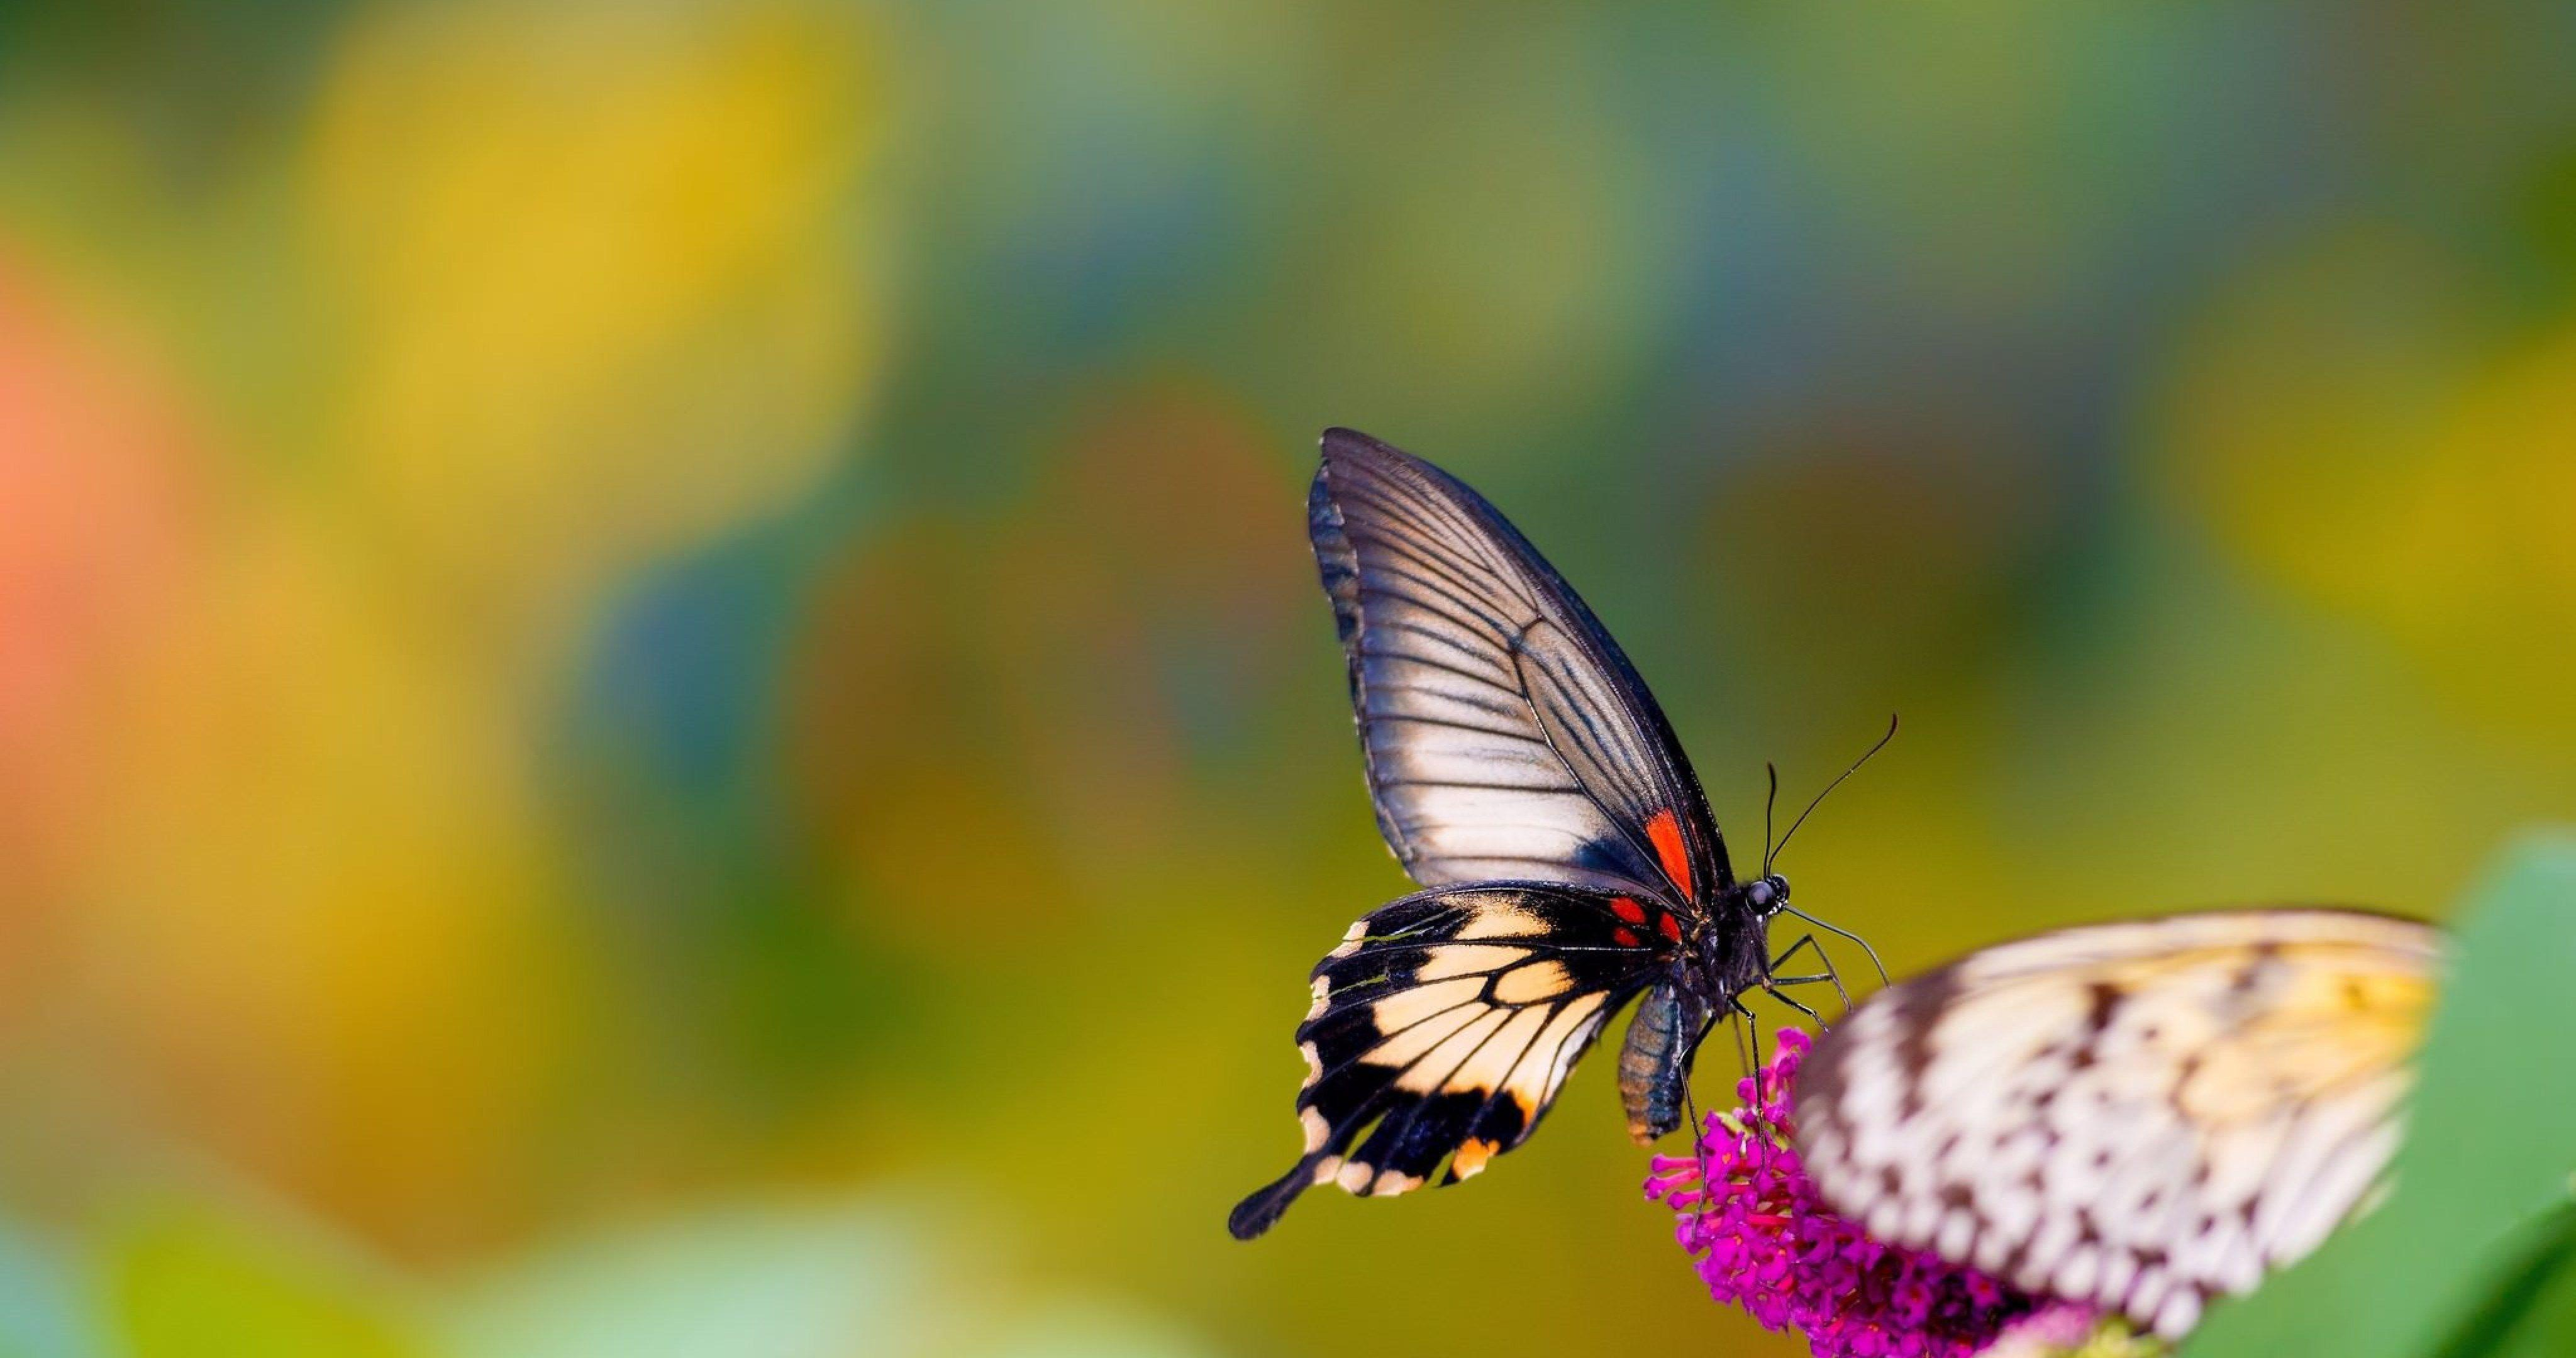 Butterfly 4k wallpapers wallpaper cave - Background images 4k hd ...